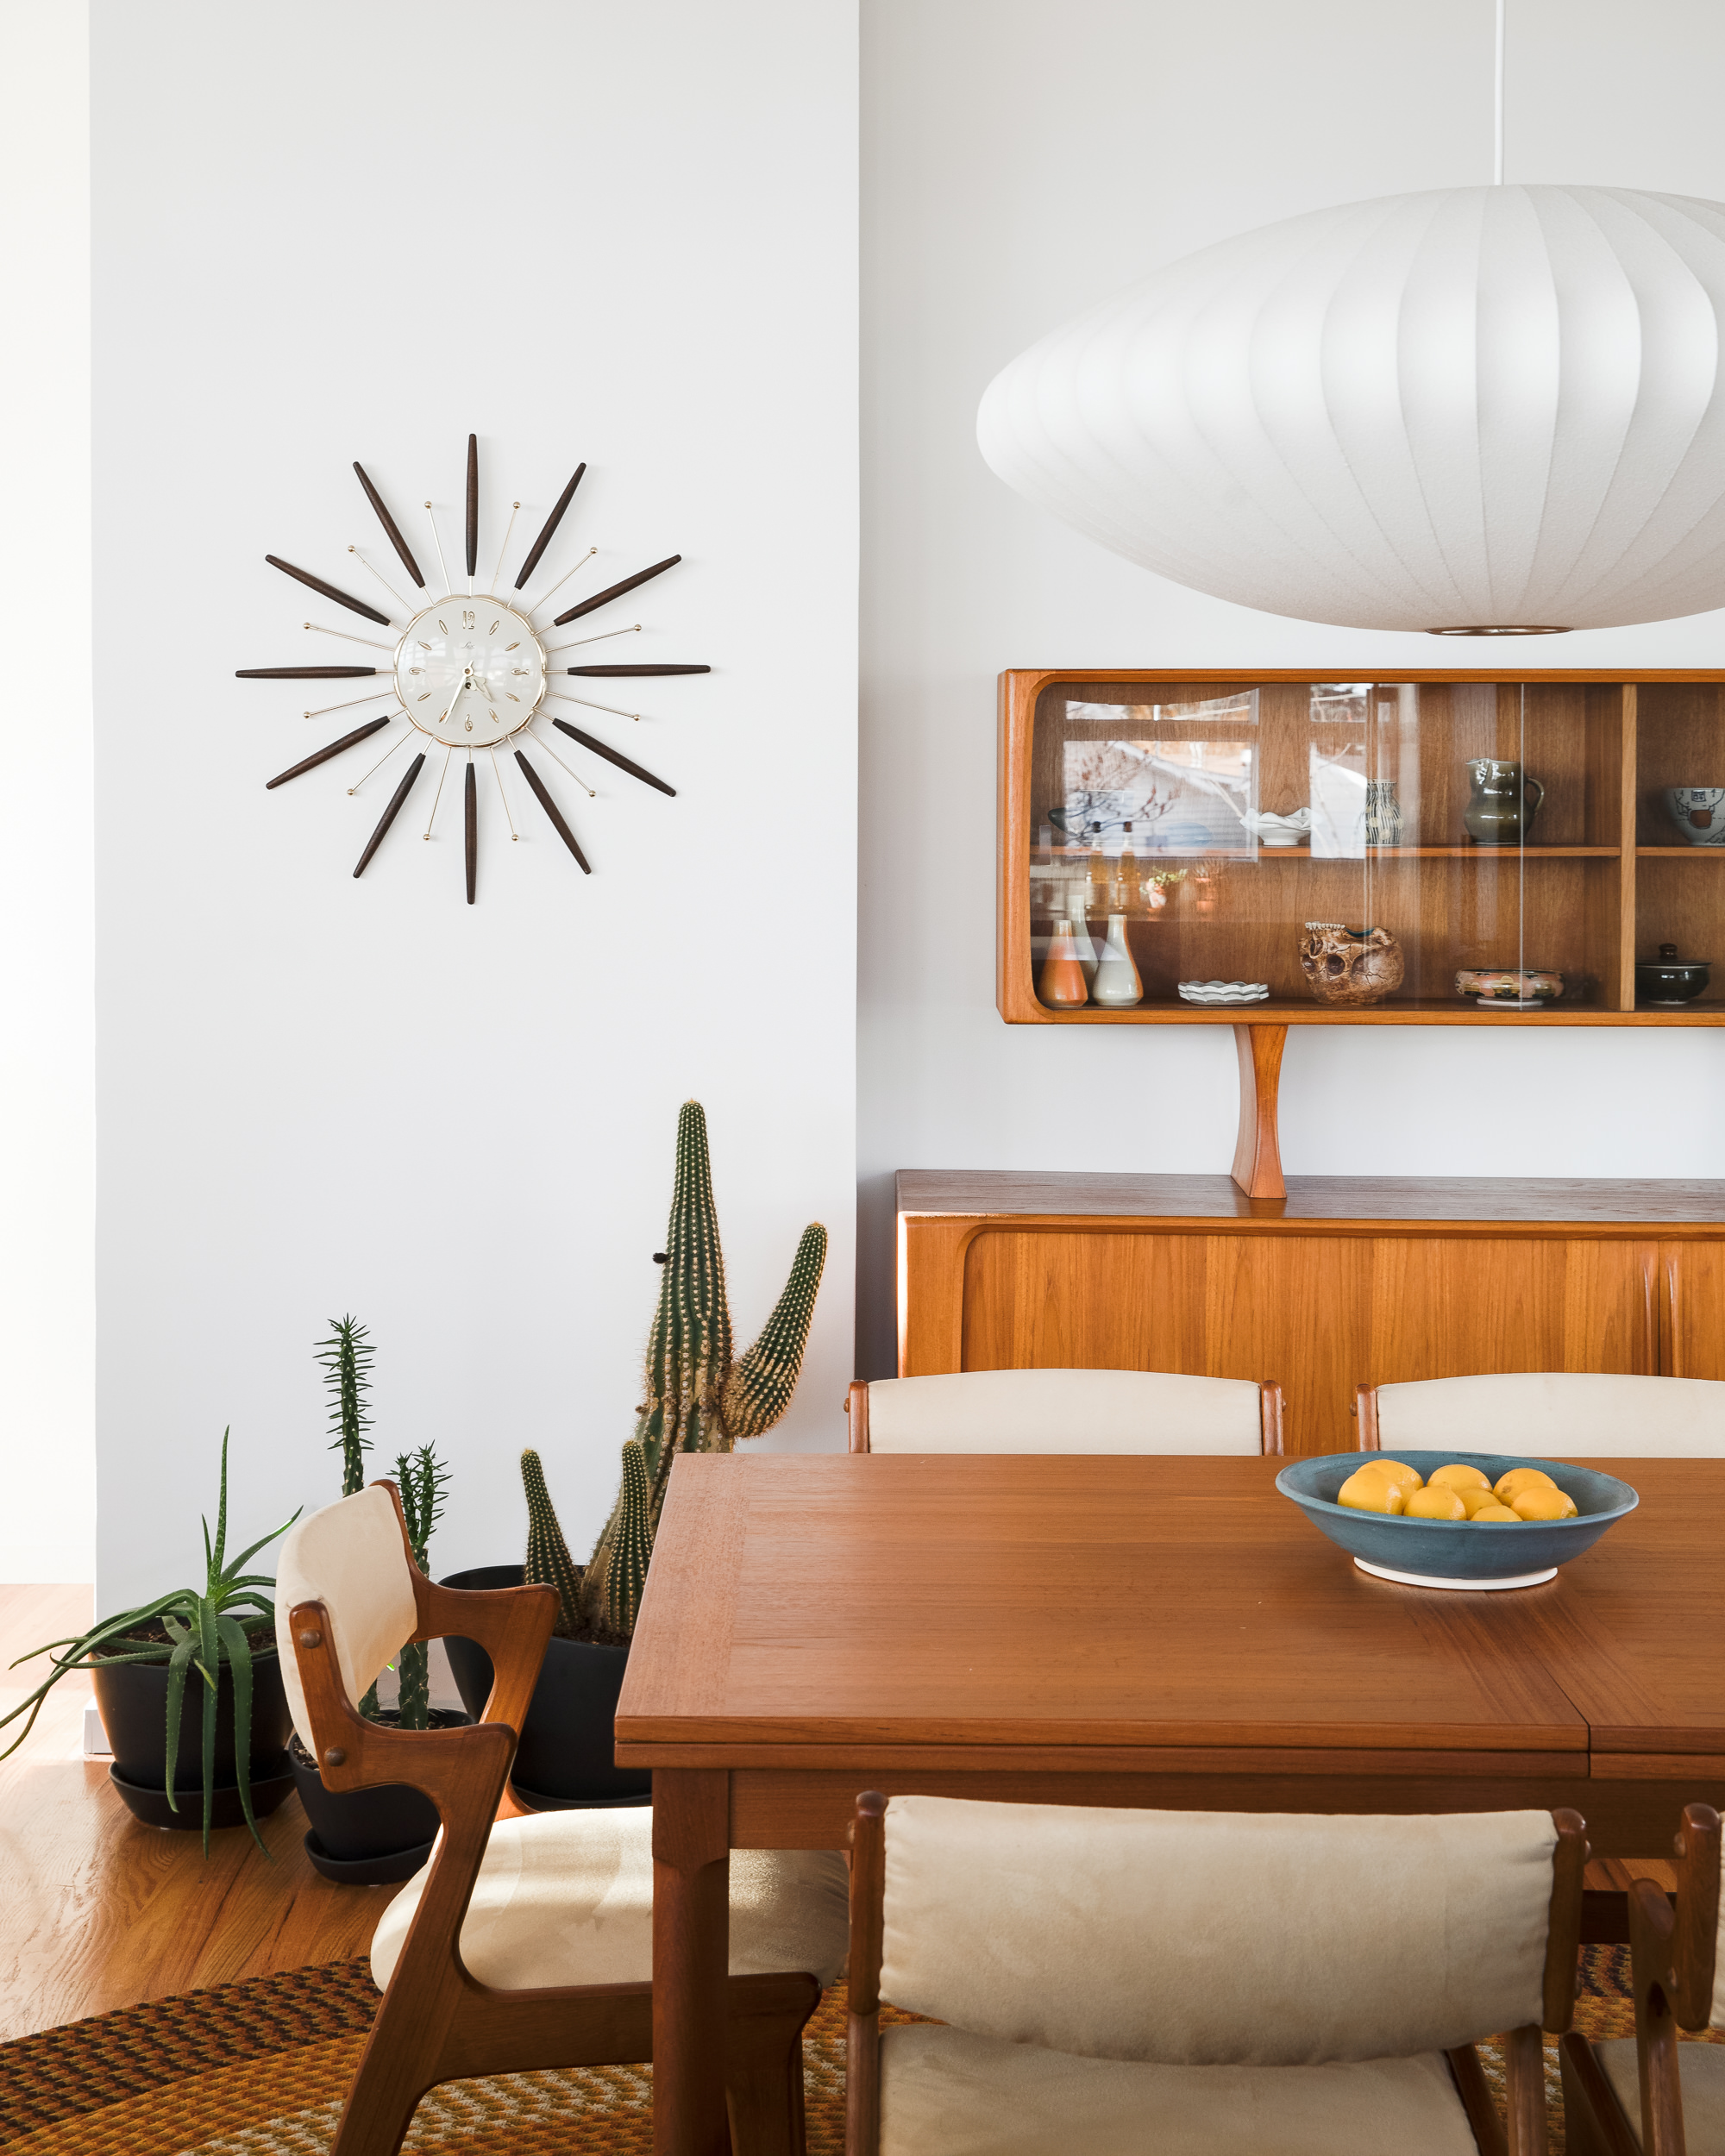 In the dining area, a  George Nelson Bubble Lamp  hangs above a vintage  Skovmand & Andersen dining table and vintage  Dyrlund  dining chairs. A  Lux Starburst clock  hangs on the wall next to a vintage  Bernhard Pedersen and Son  sideboard and hutch. The hutch is home to ceramics by Mudpuppy Ceramics ,  Jamie Kelly , Angus Graham, and  John Cohorst .